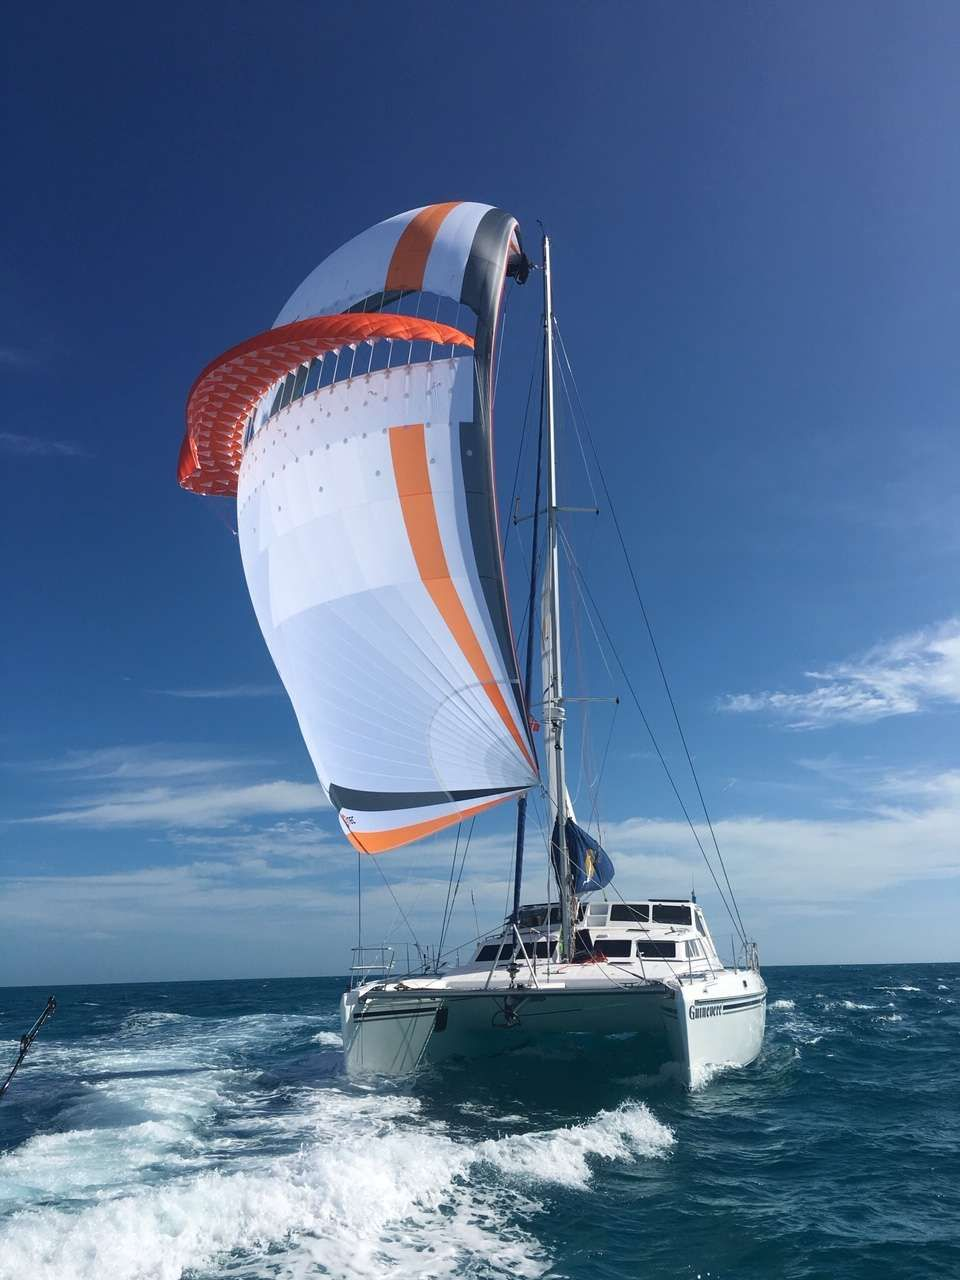 Thrilling Sailing on Guinevere!